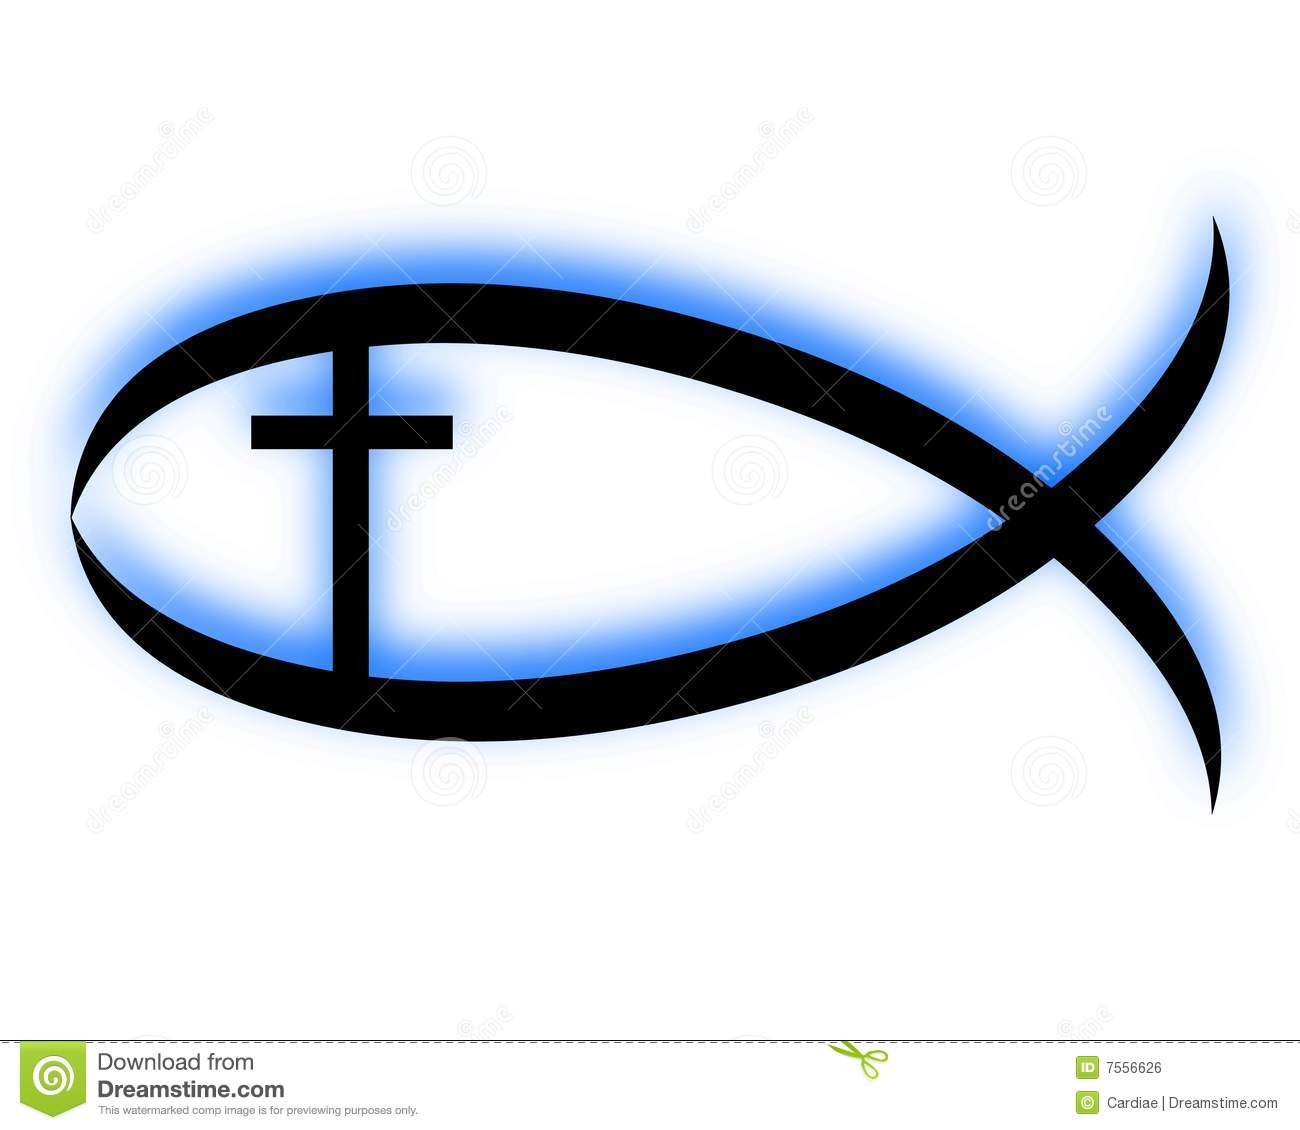 christian fish clipart free download - photo #40